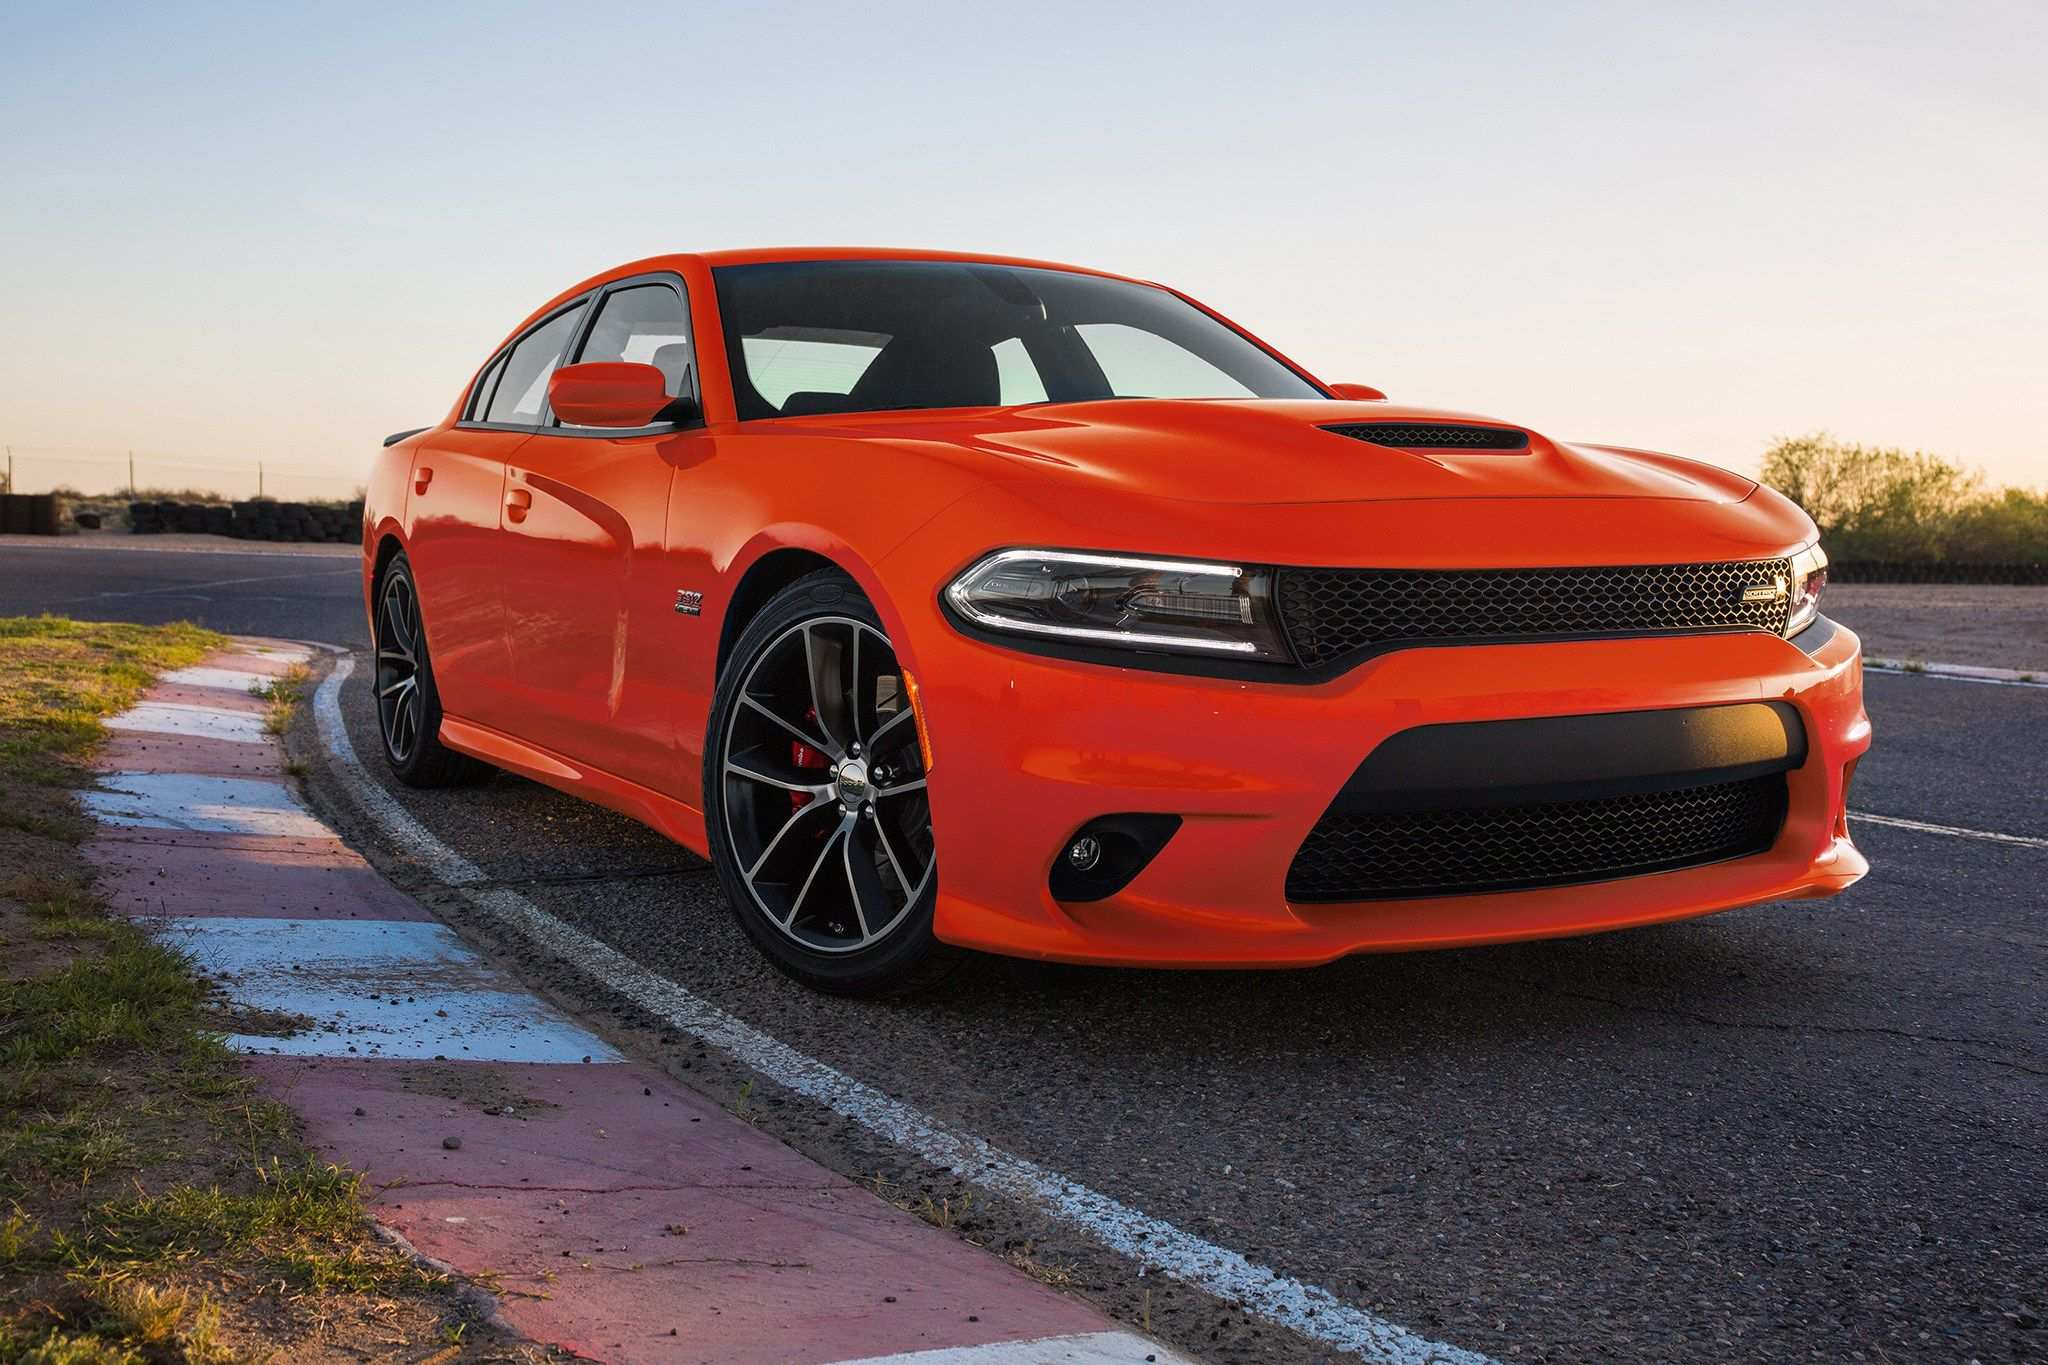 35 A Dodge Vehicles 2020 Images